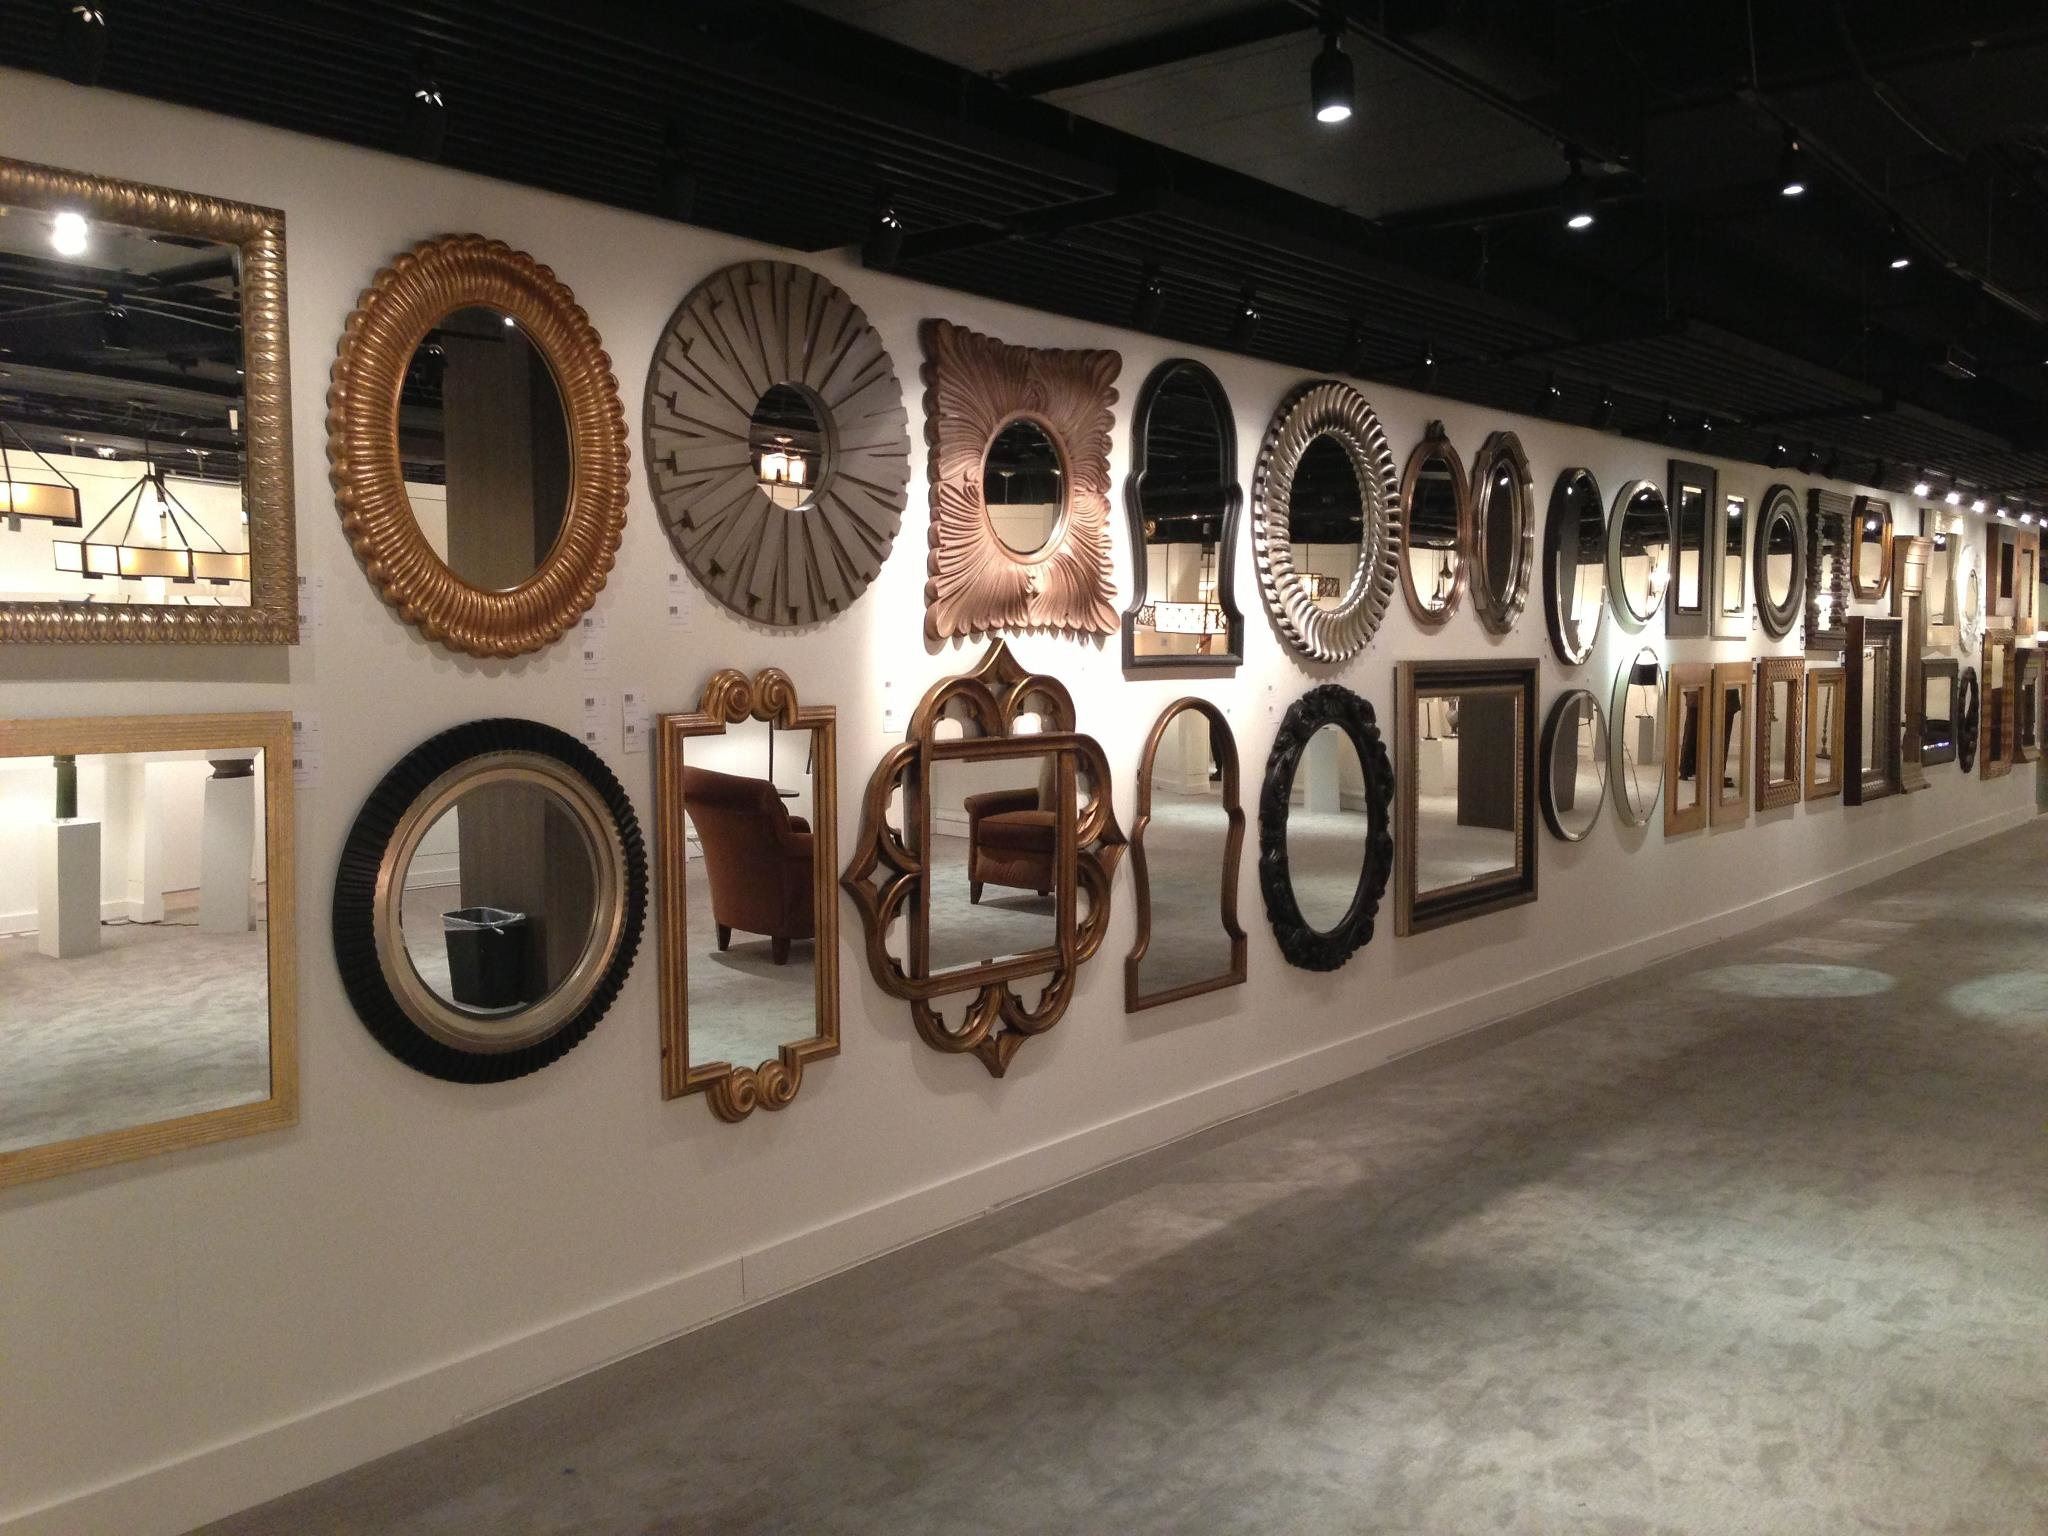 One Stop Lighting Thousand Oaks One Stop Lighting And Fans In Thousand Oaks  Ca 91360 . One Stop Lighting ...